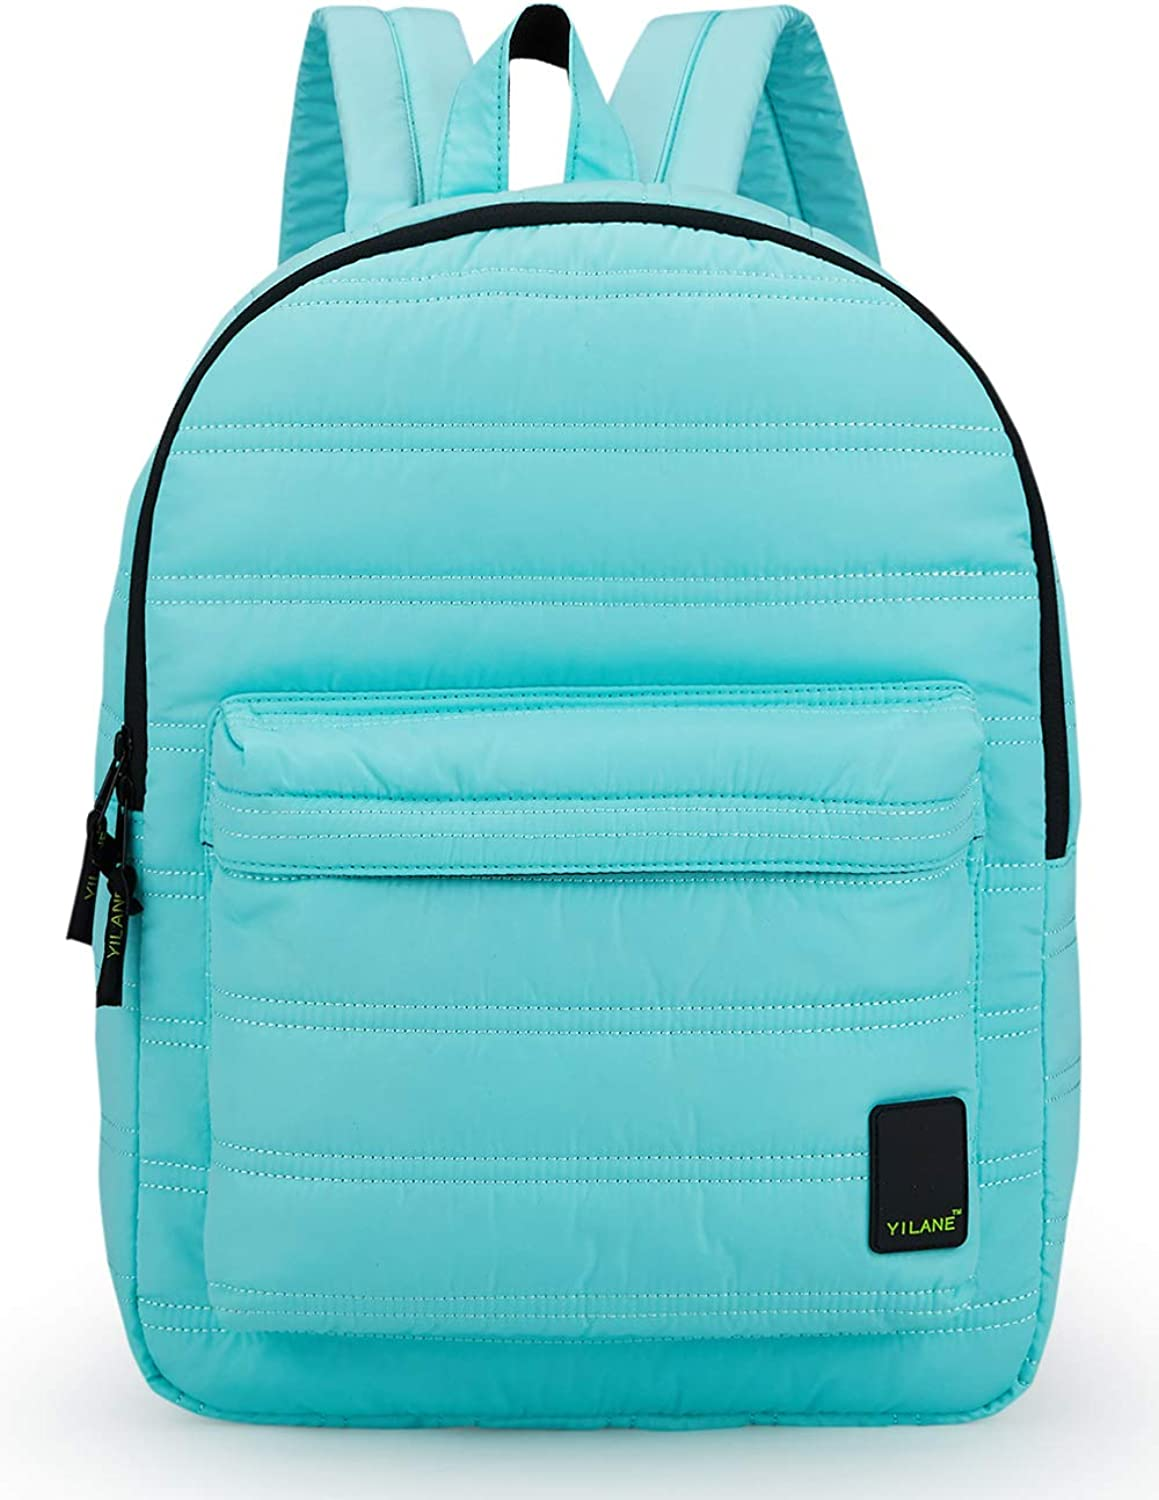 Everyday Backpack, Stylish Lightweight Waterproof Casual Backpack or Travel Daypacks with Soft Durable Material for Student (Light Green)